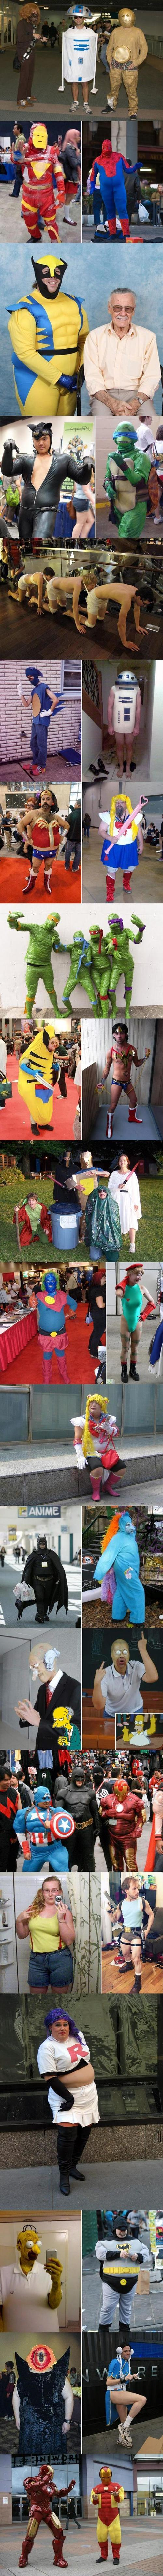 Horrible Cosplay Fails